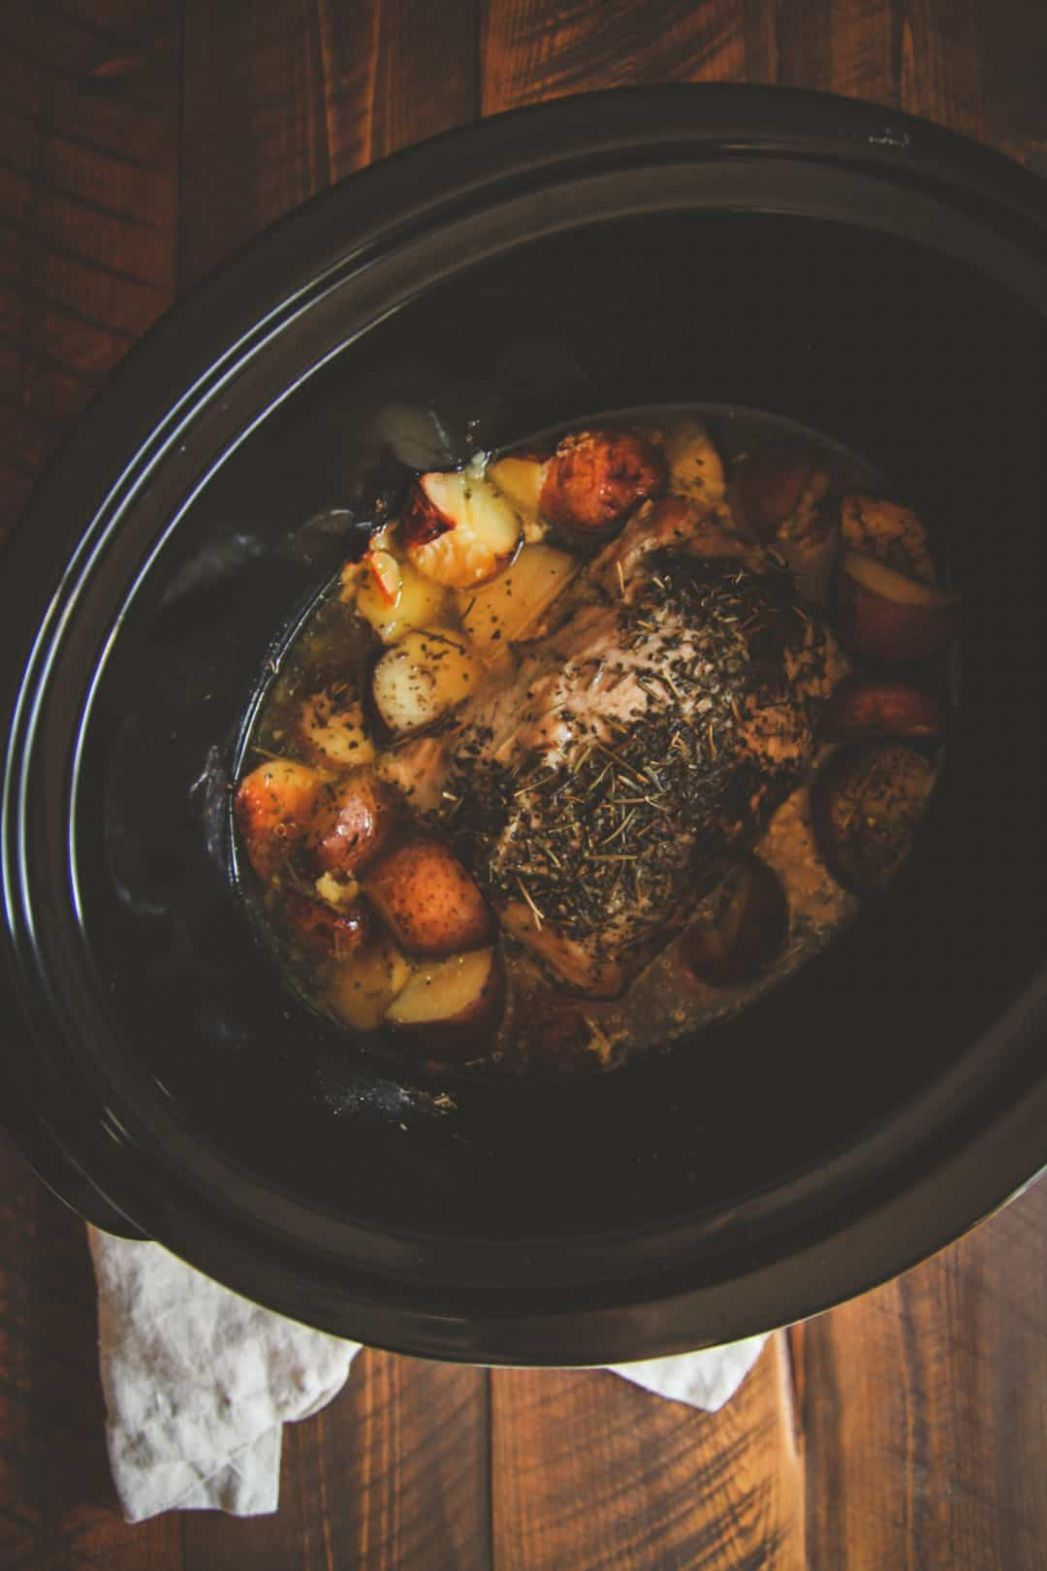 12 Ingredient Crock Pot Pork Roast and Potatoes Recipe - Sweetphi - Recipes Pork Roast Crock Pot